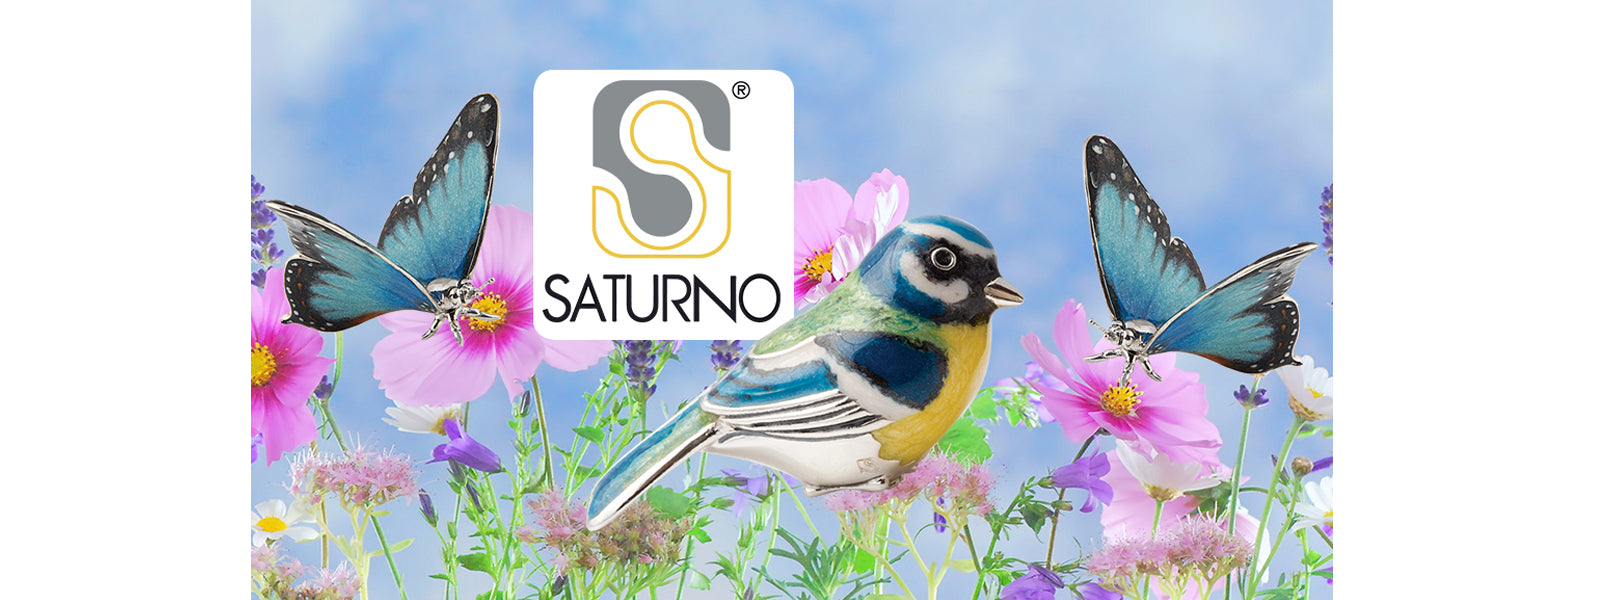 Saturno Silver Hand enamelled Jewellery and gifts